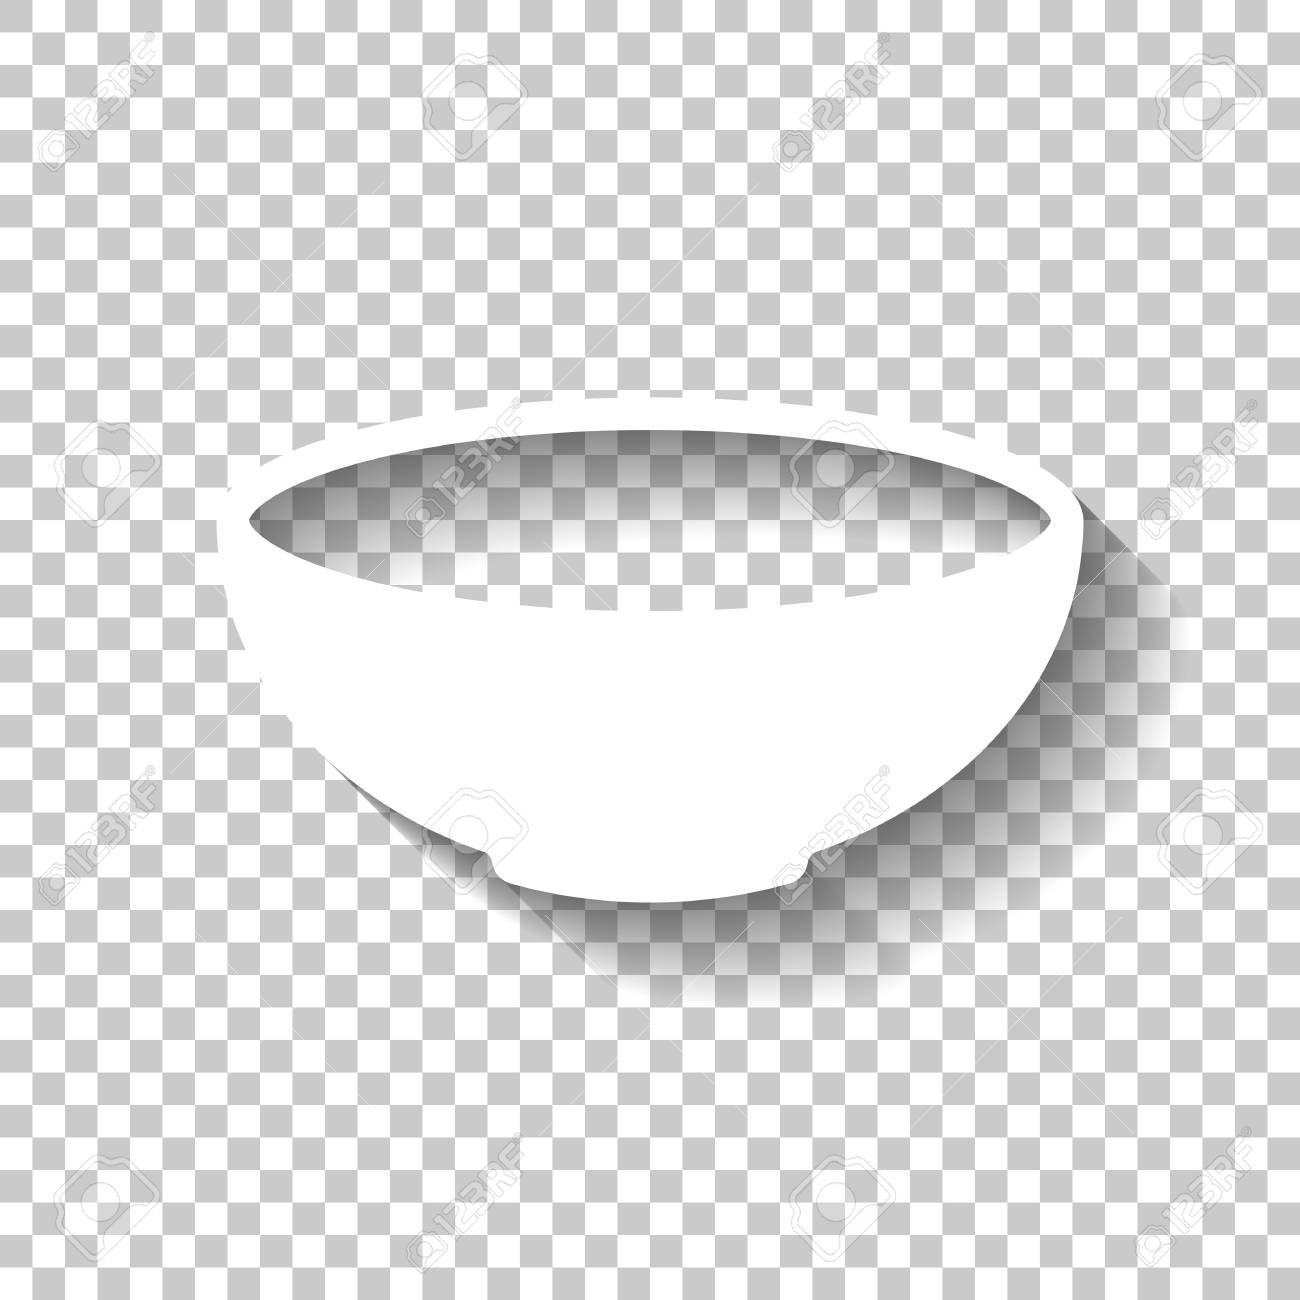 empty bowl icon sign of kitchen white icon with shadow on transparent royalty free cliparts vectors and stock illustration image 114275053 123rf com